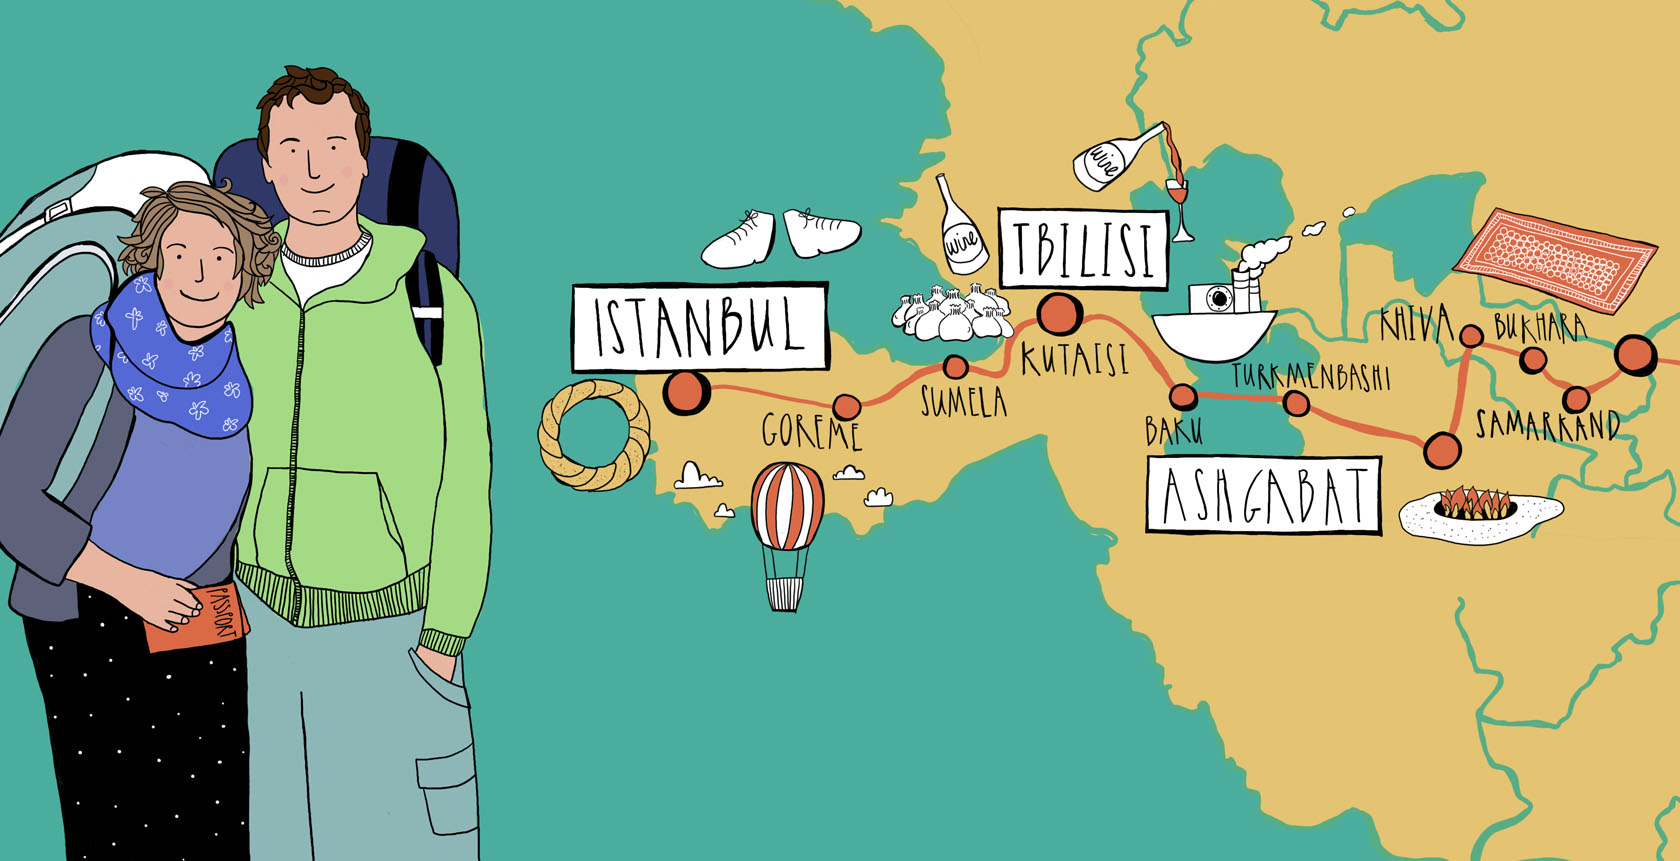 They Draw and Travel - Eles viajam e desenham - Mapas ilustrados